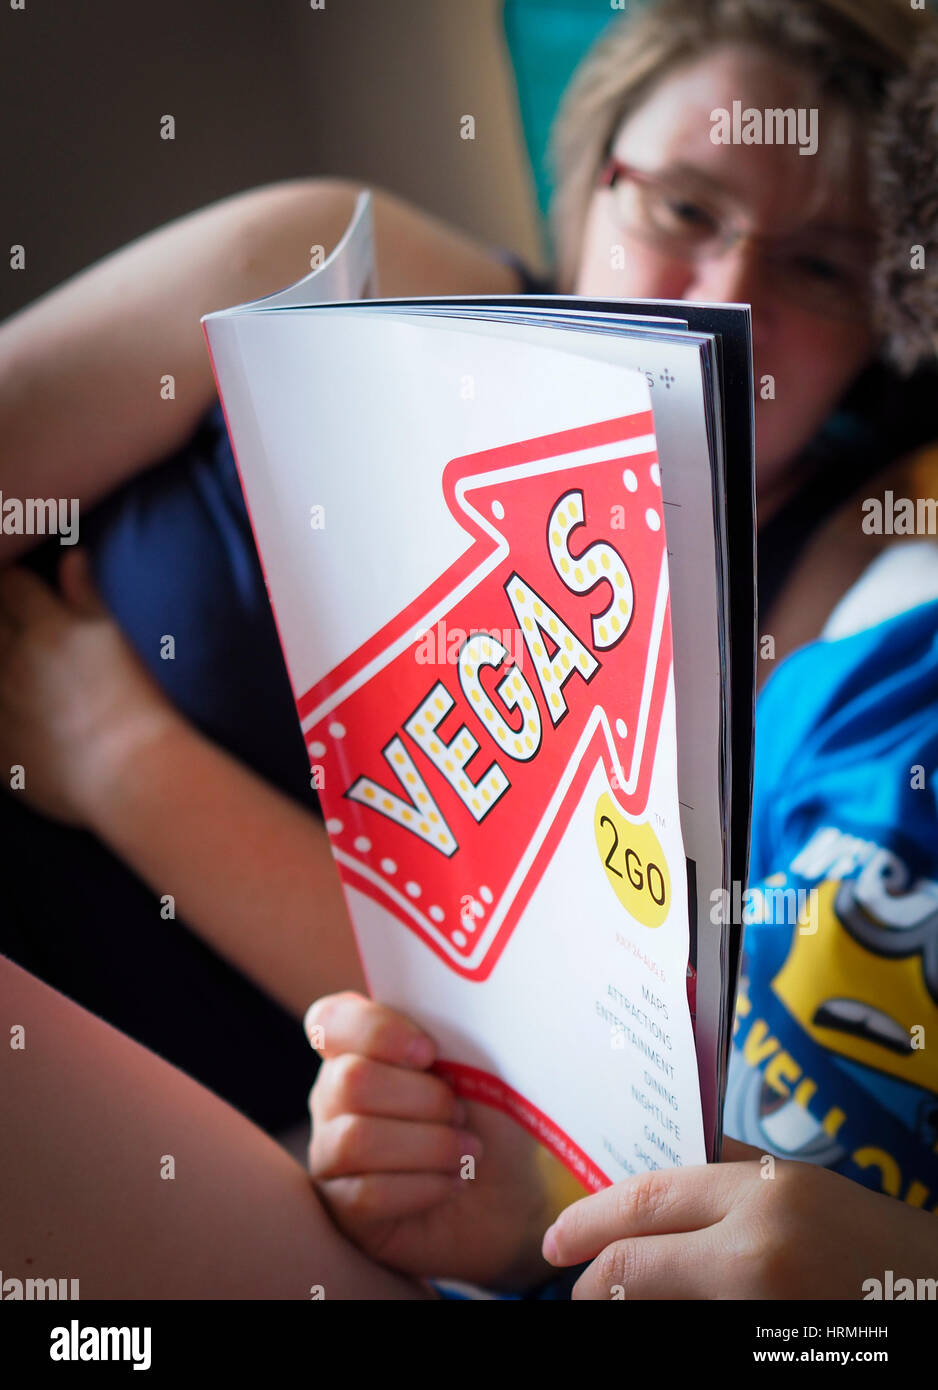 Las Vegas tourists prepare for a night out by checking the city programme in the 'Vegas2Go' magazine - Stock Image